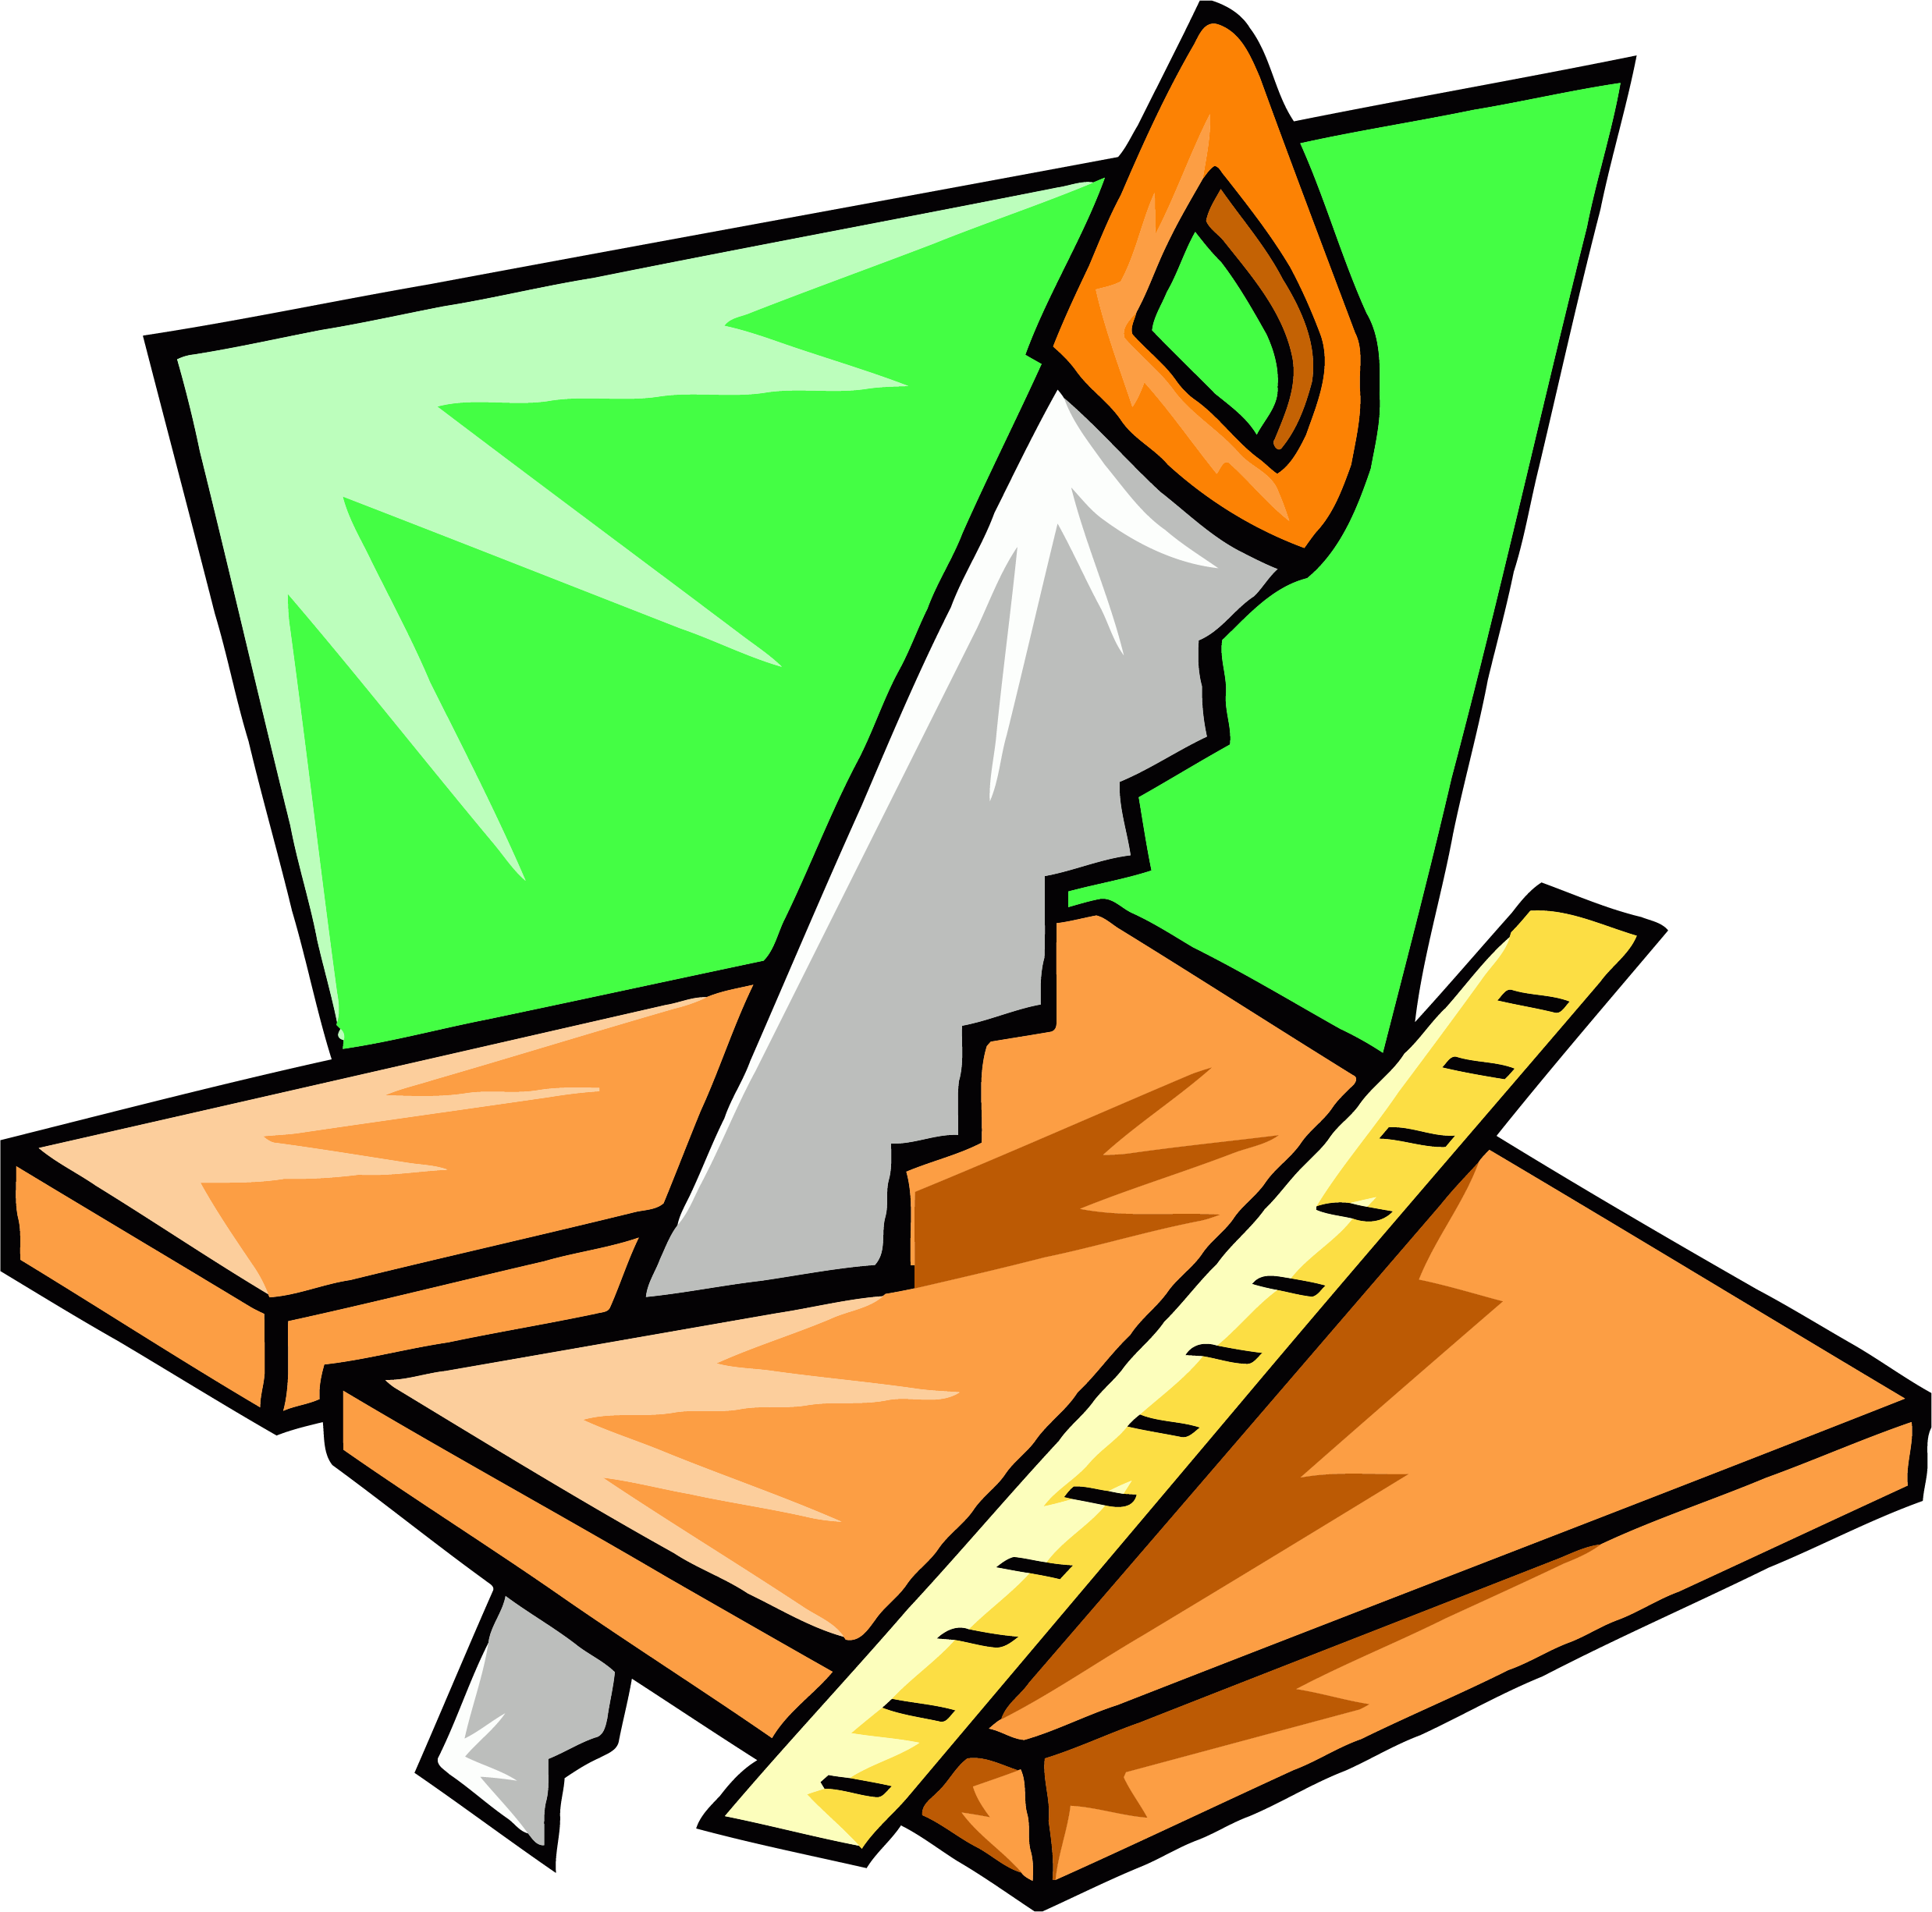 Working clipart working. Saw wood carpenter png